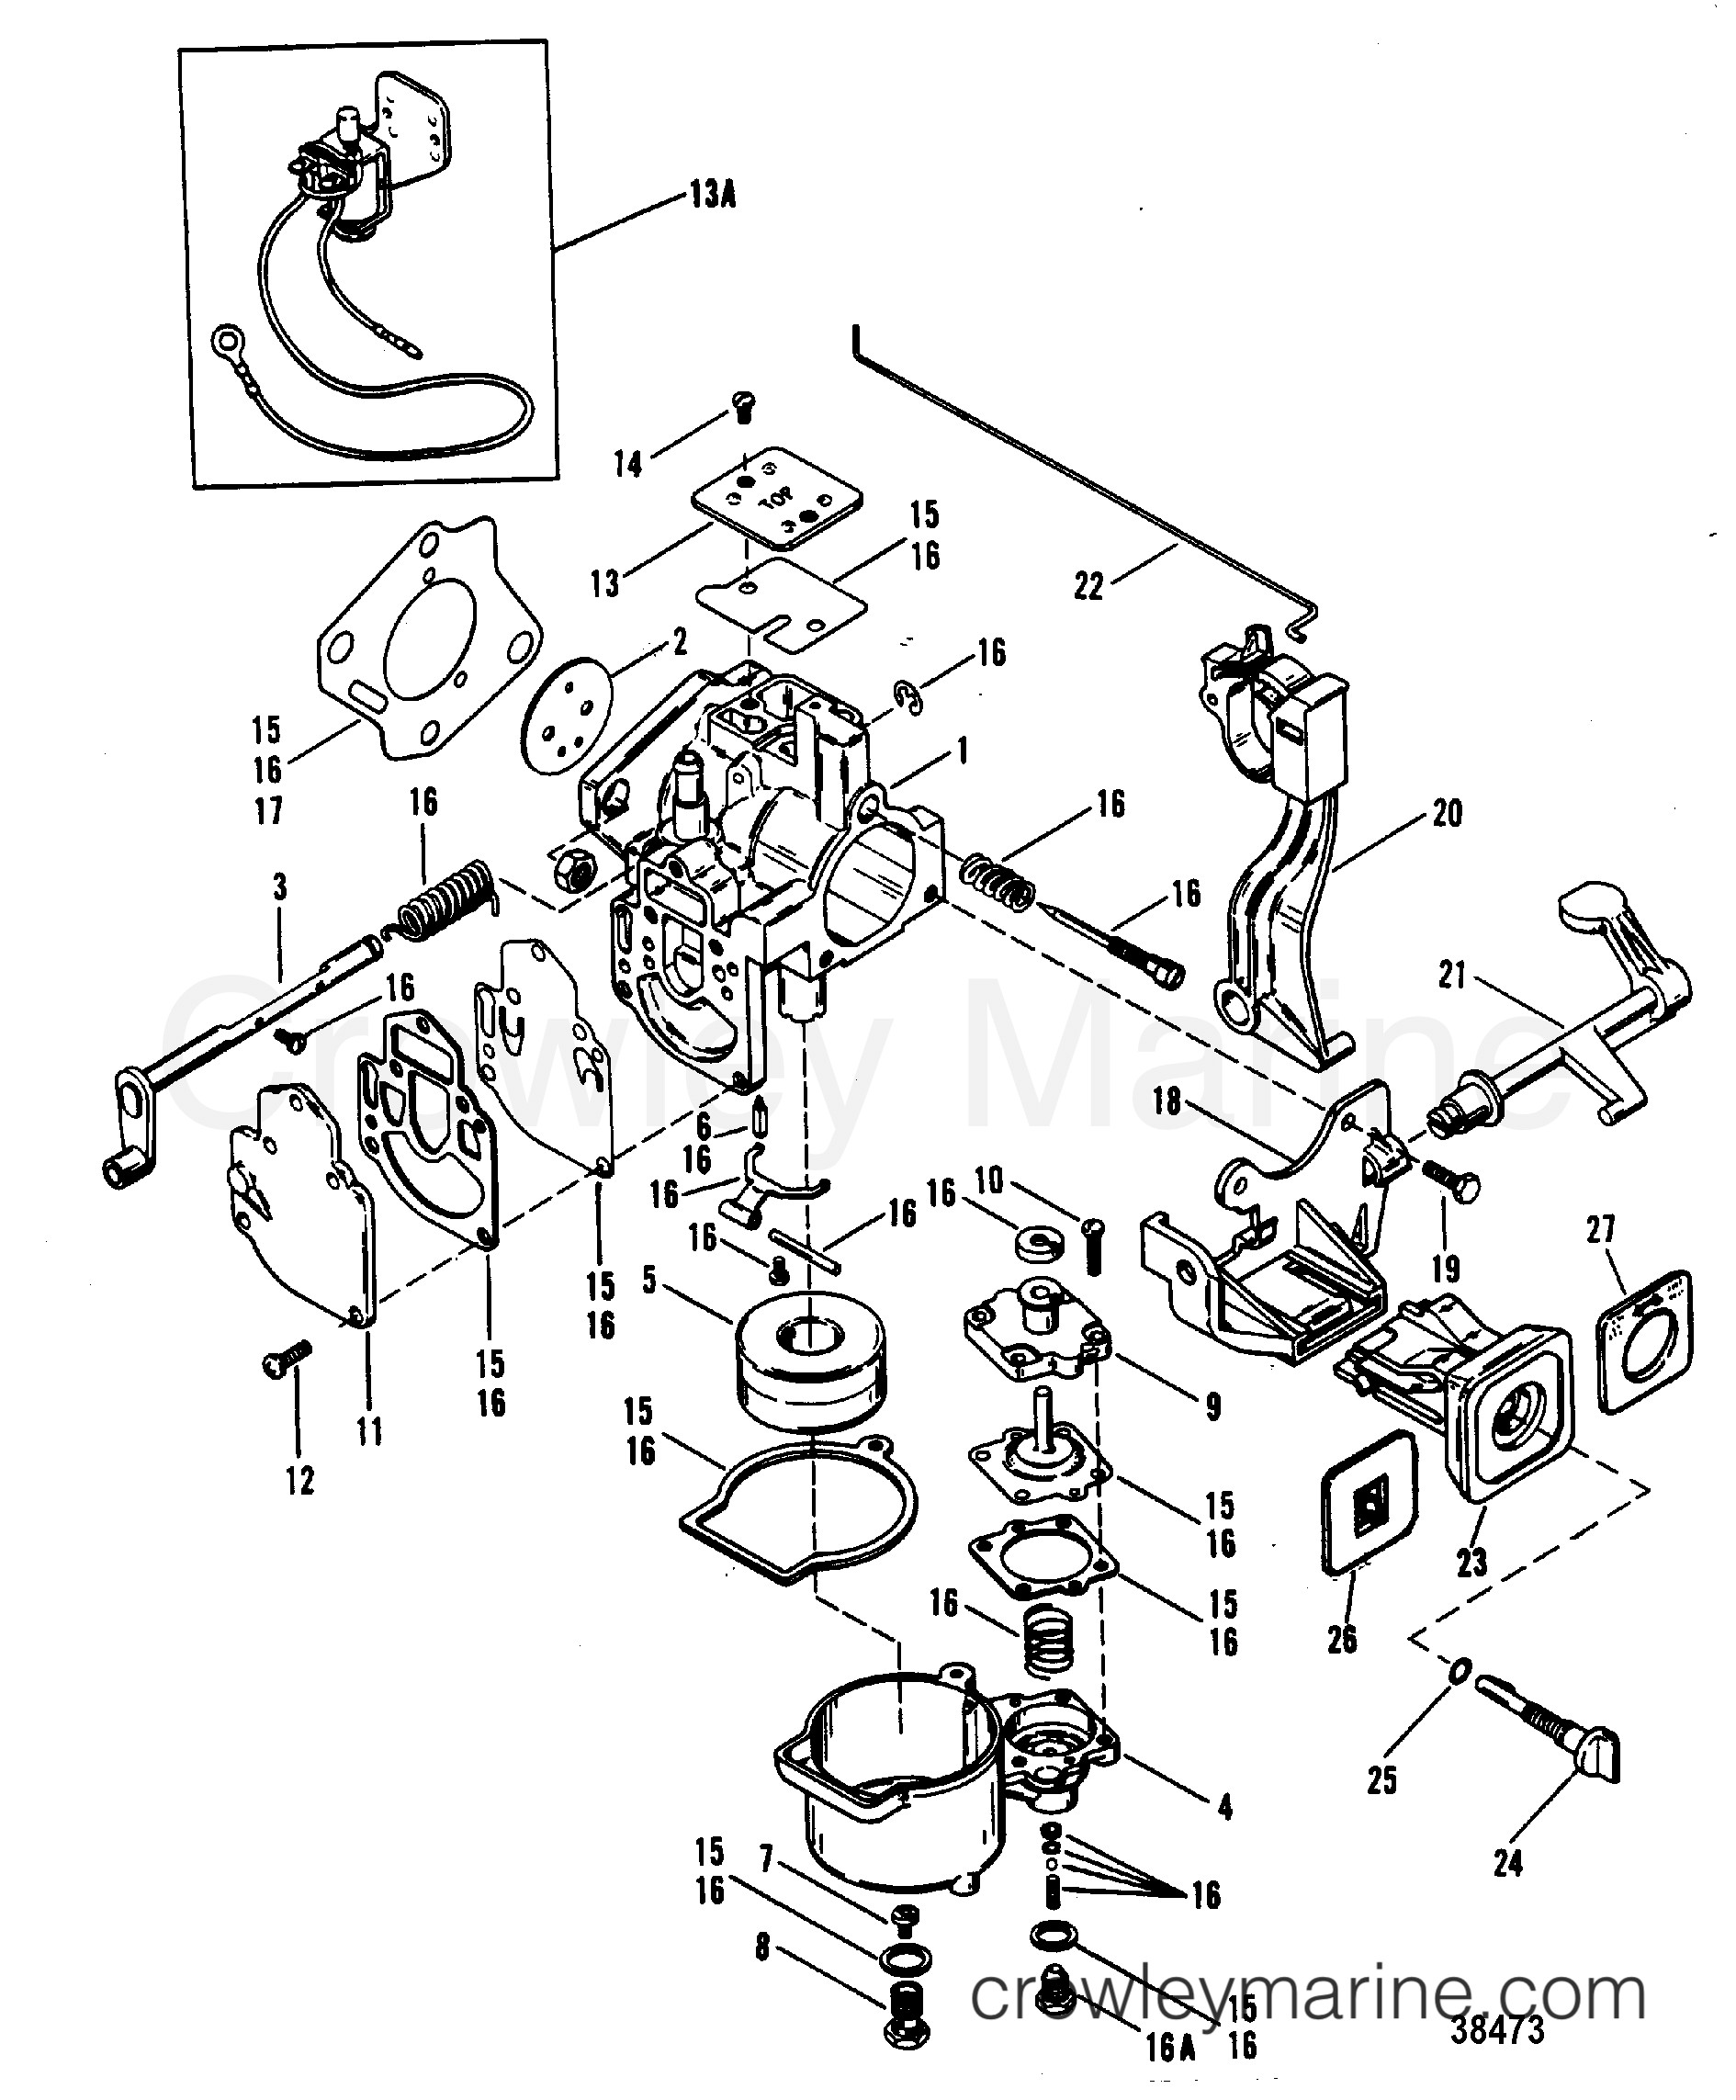 Mercury Outboard Engine Diagram Carburetor Wmc 9 10 11 12 24 25 26 27 1977 Mariner Outboard 20 [m Of Mercury Outboard Engine Diagram